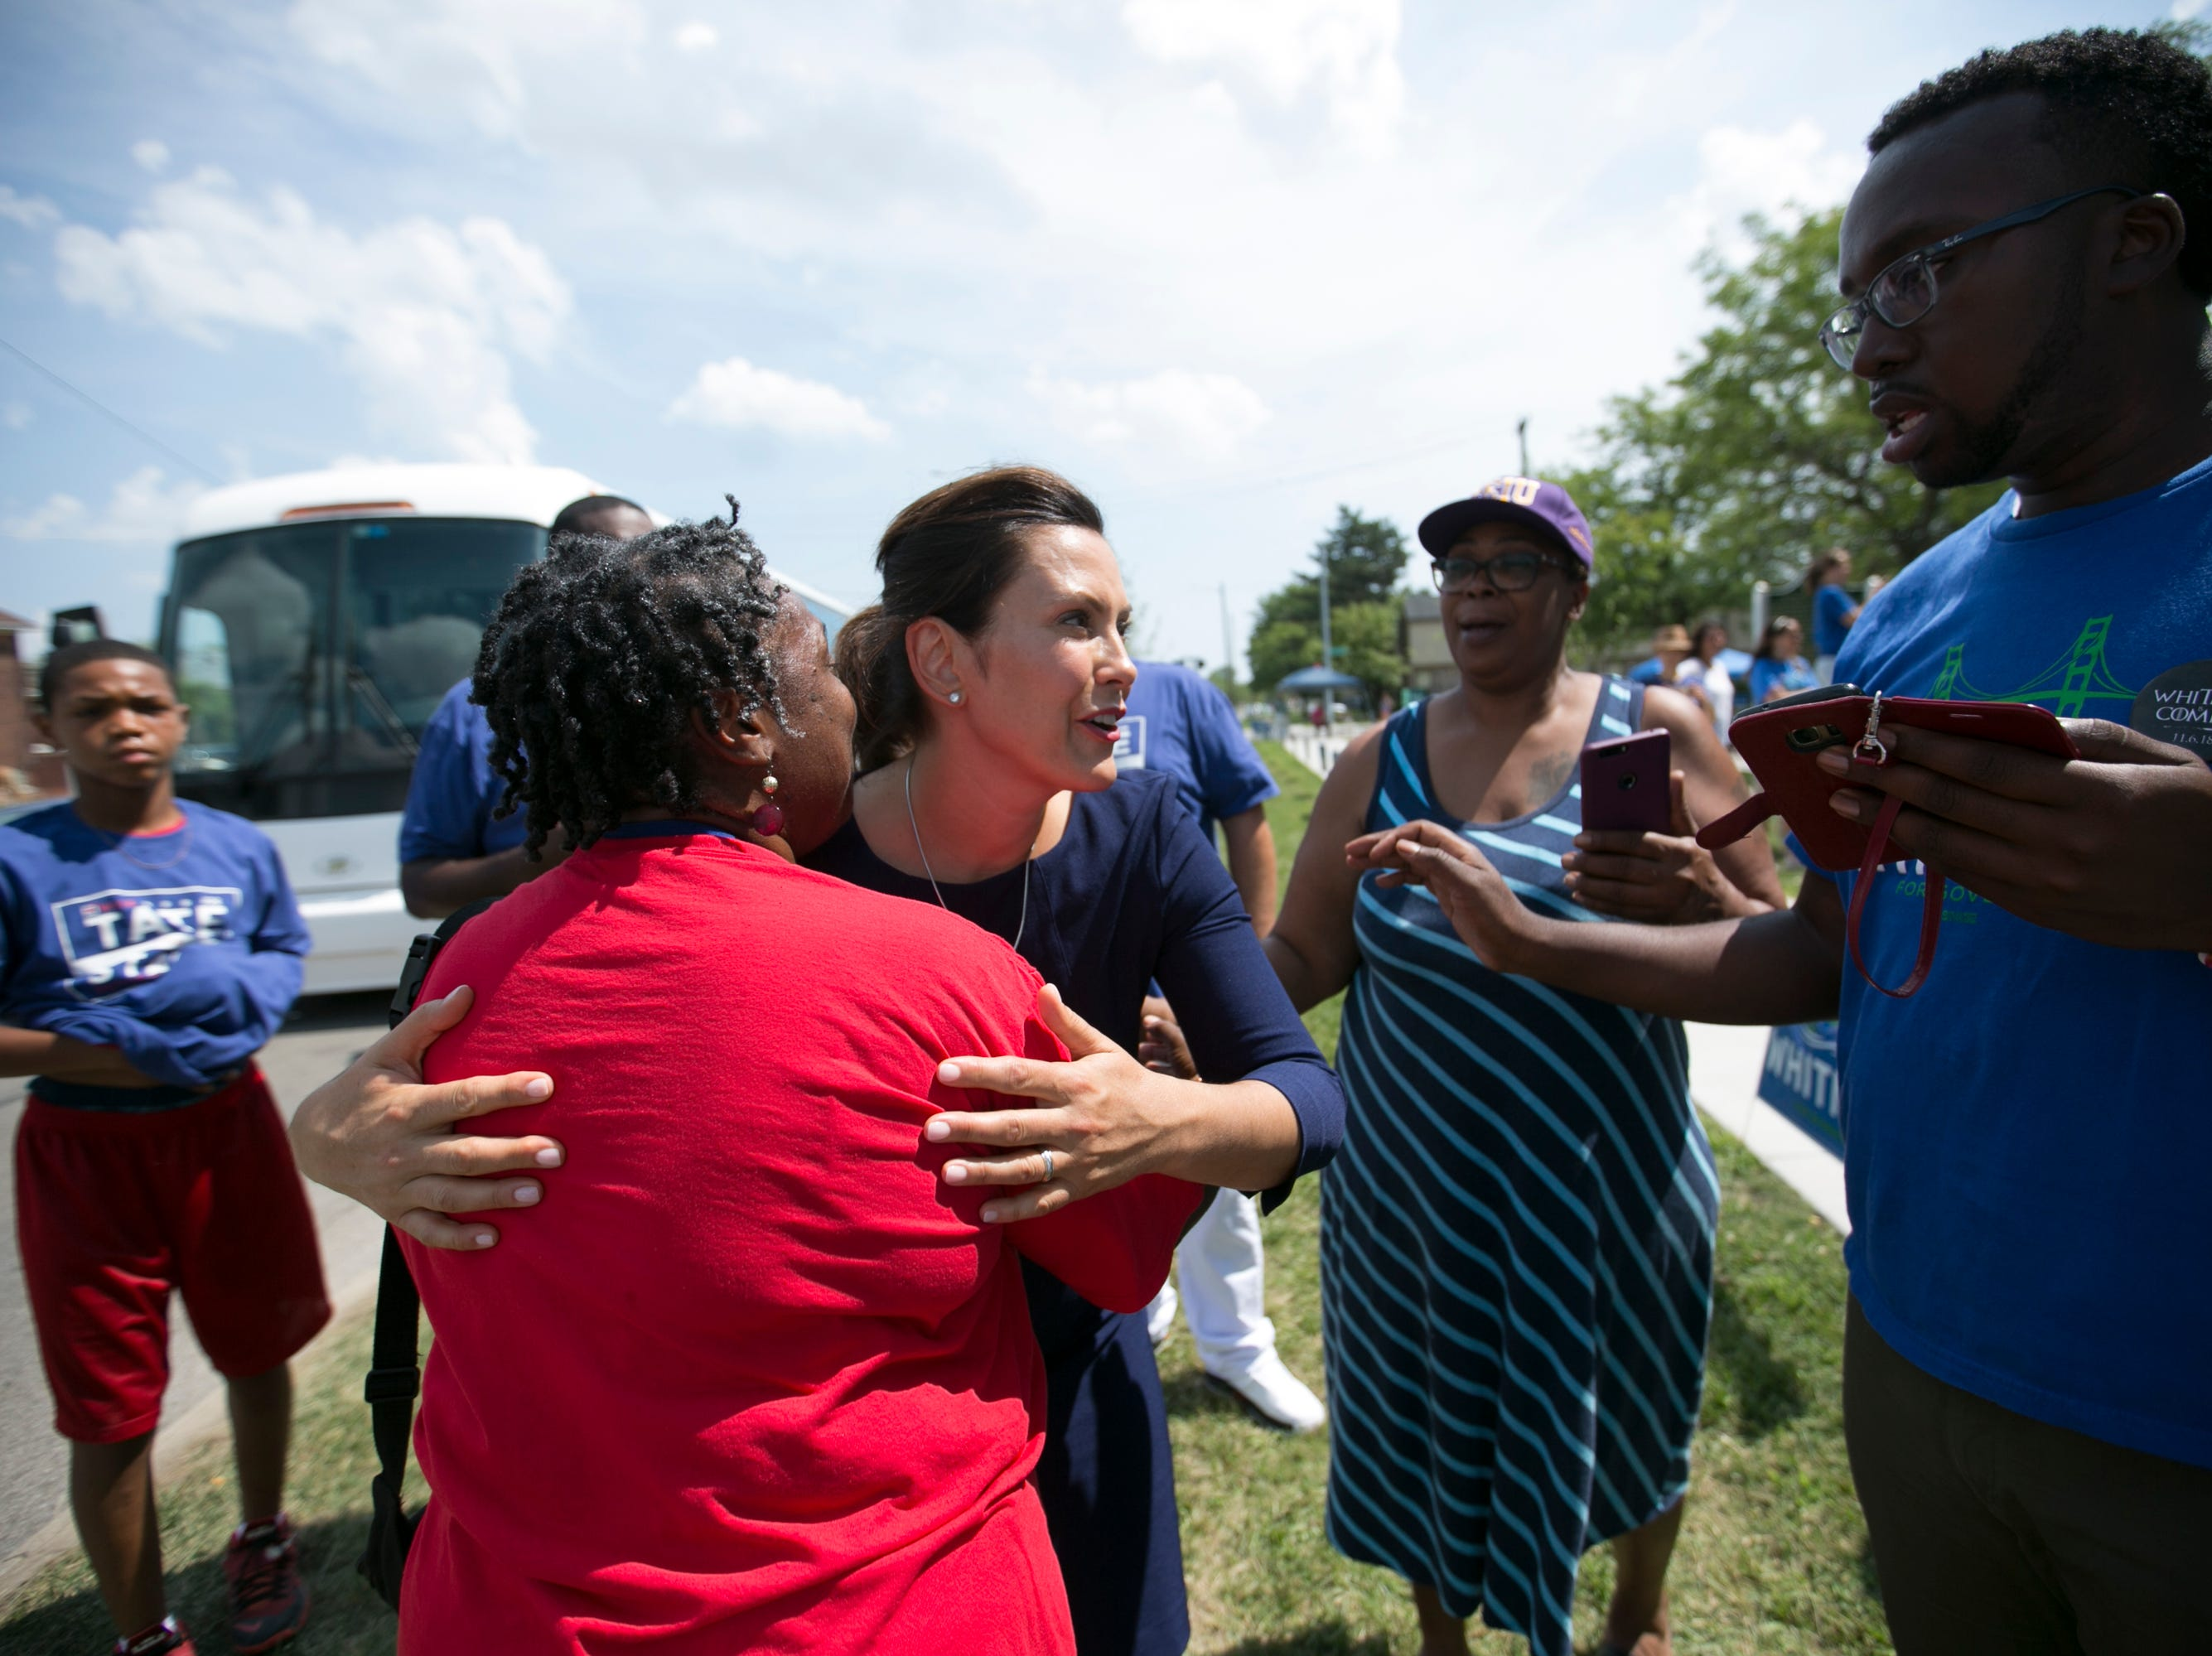 Gubernatorial candidate Gretchen Whitmer works the crowd at Gordon Park in Detroit on August 5, 2018.